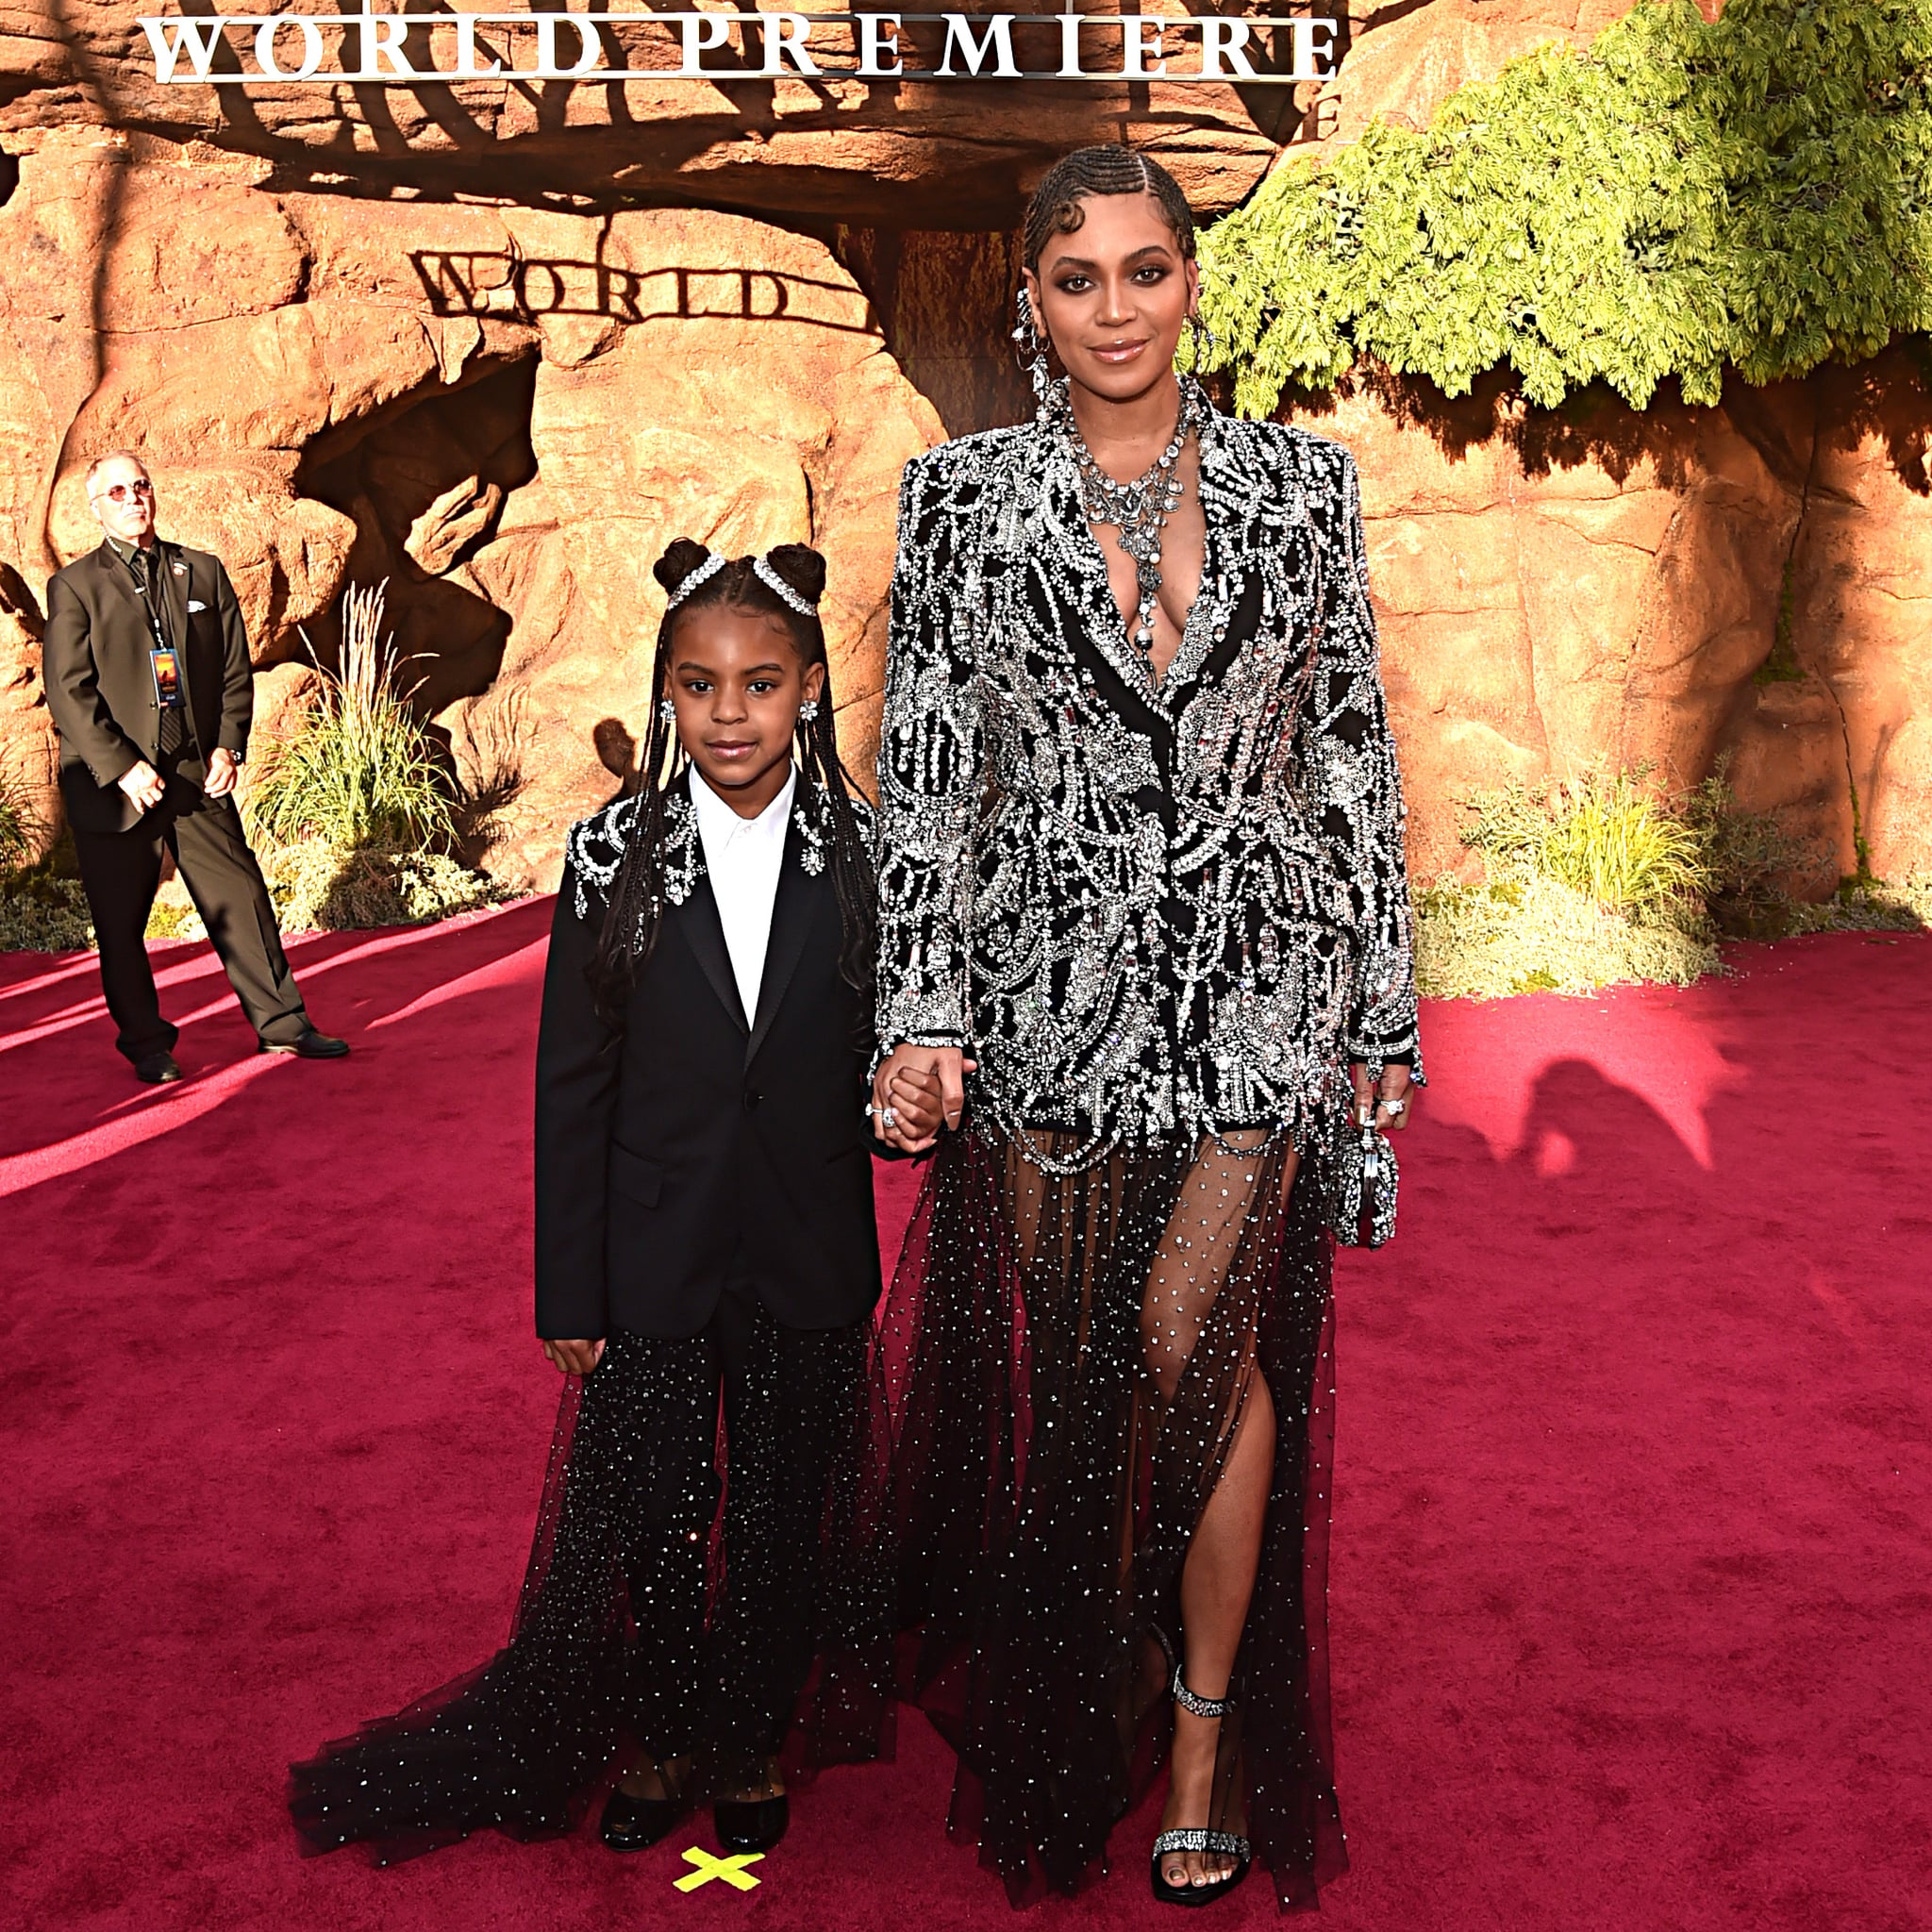 HOLLYWOOD, CALIFORNIA - JULY 09: (EDITORS NOTE: Retransmission with alternate crop.) Blue Ivy Carter (L) and Beyonce Knowles-Carter attend the World Premiere of Disney's